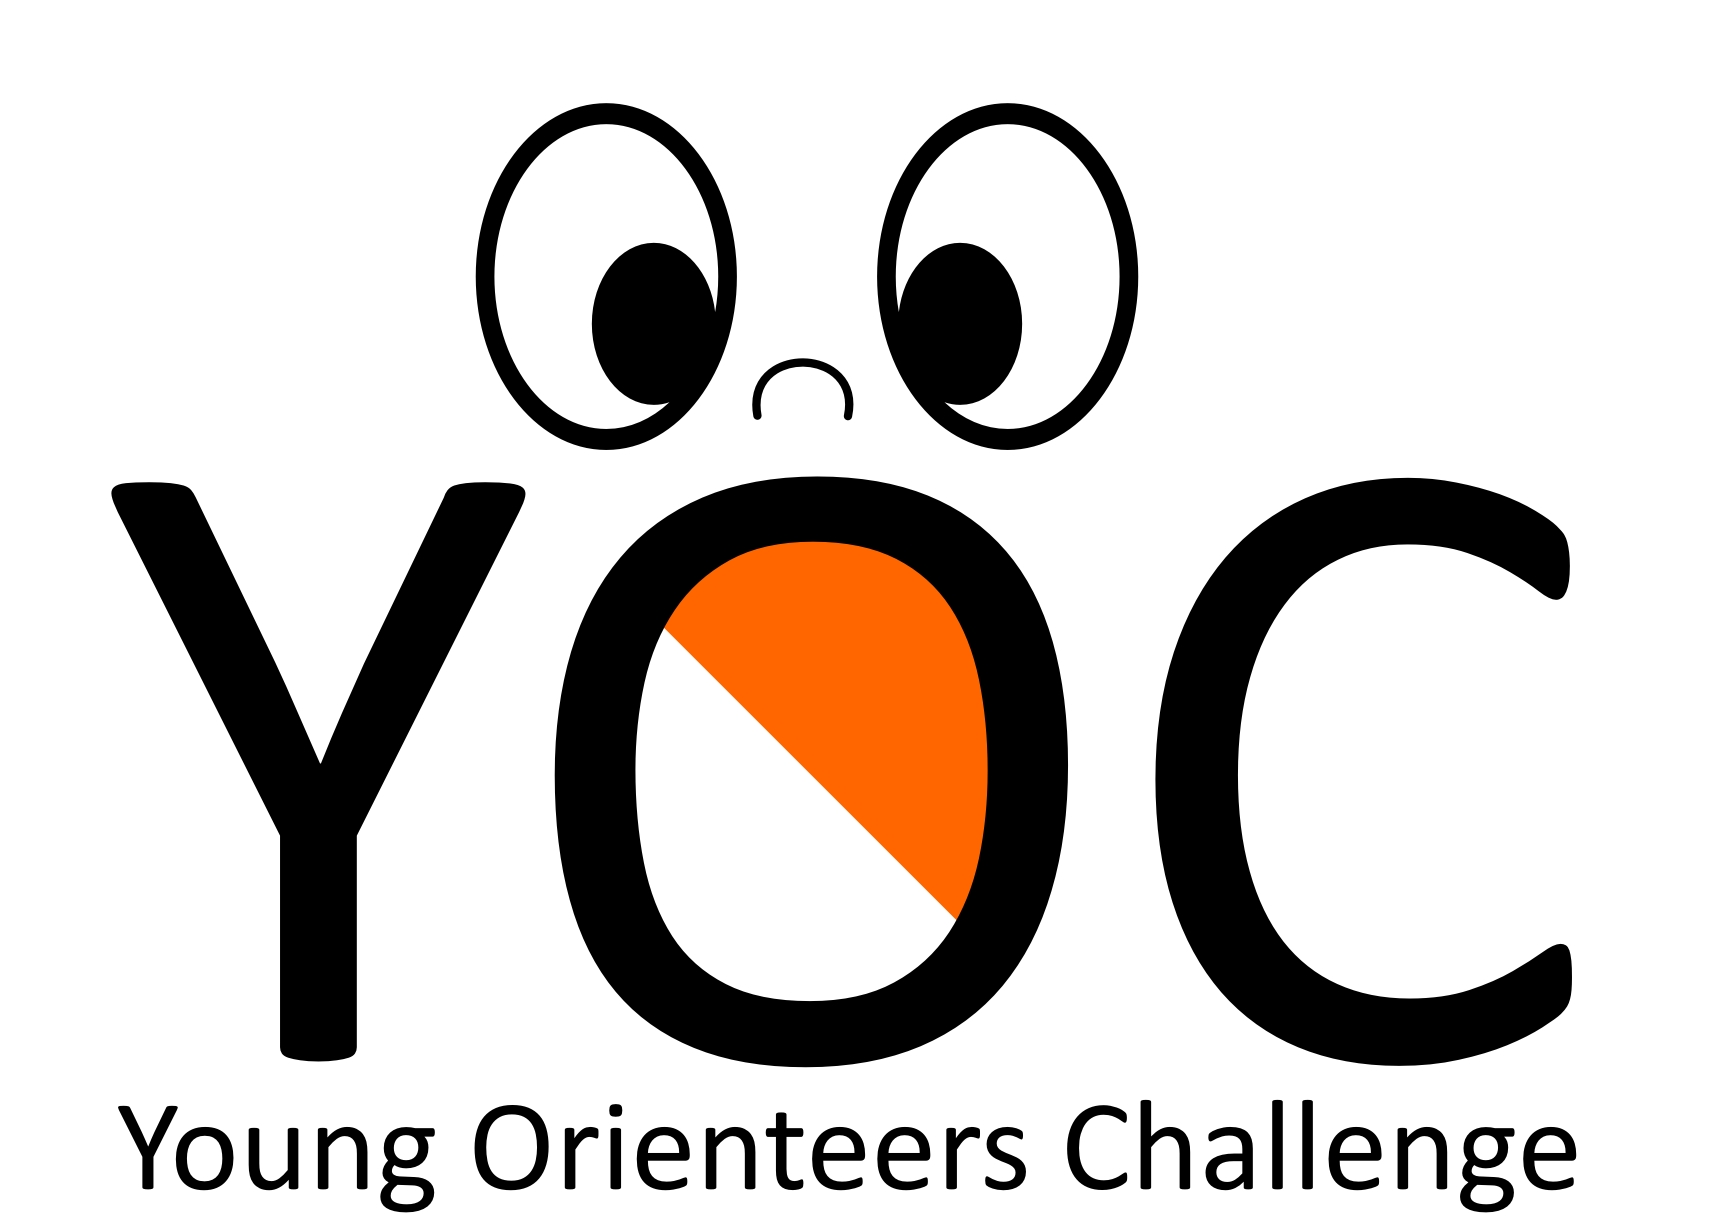 School Resources : Orienteering Federation of South Africa